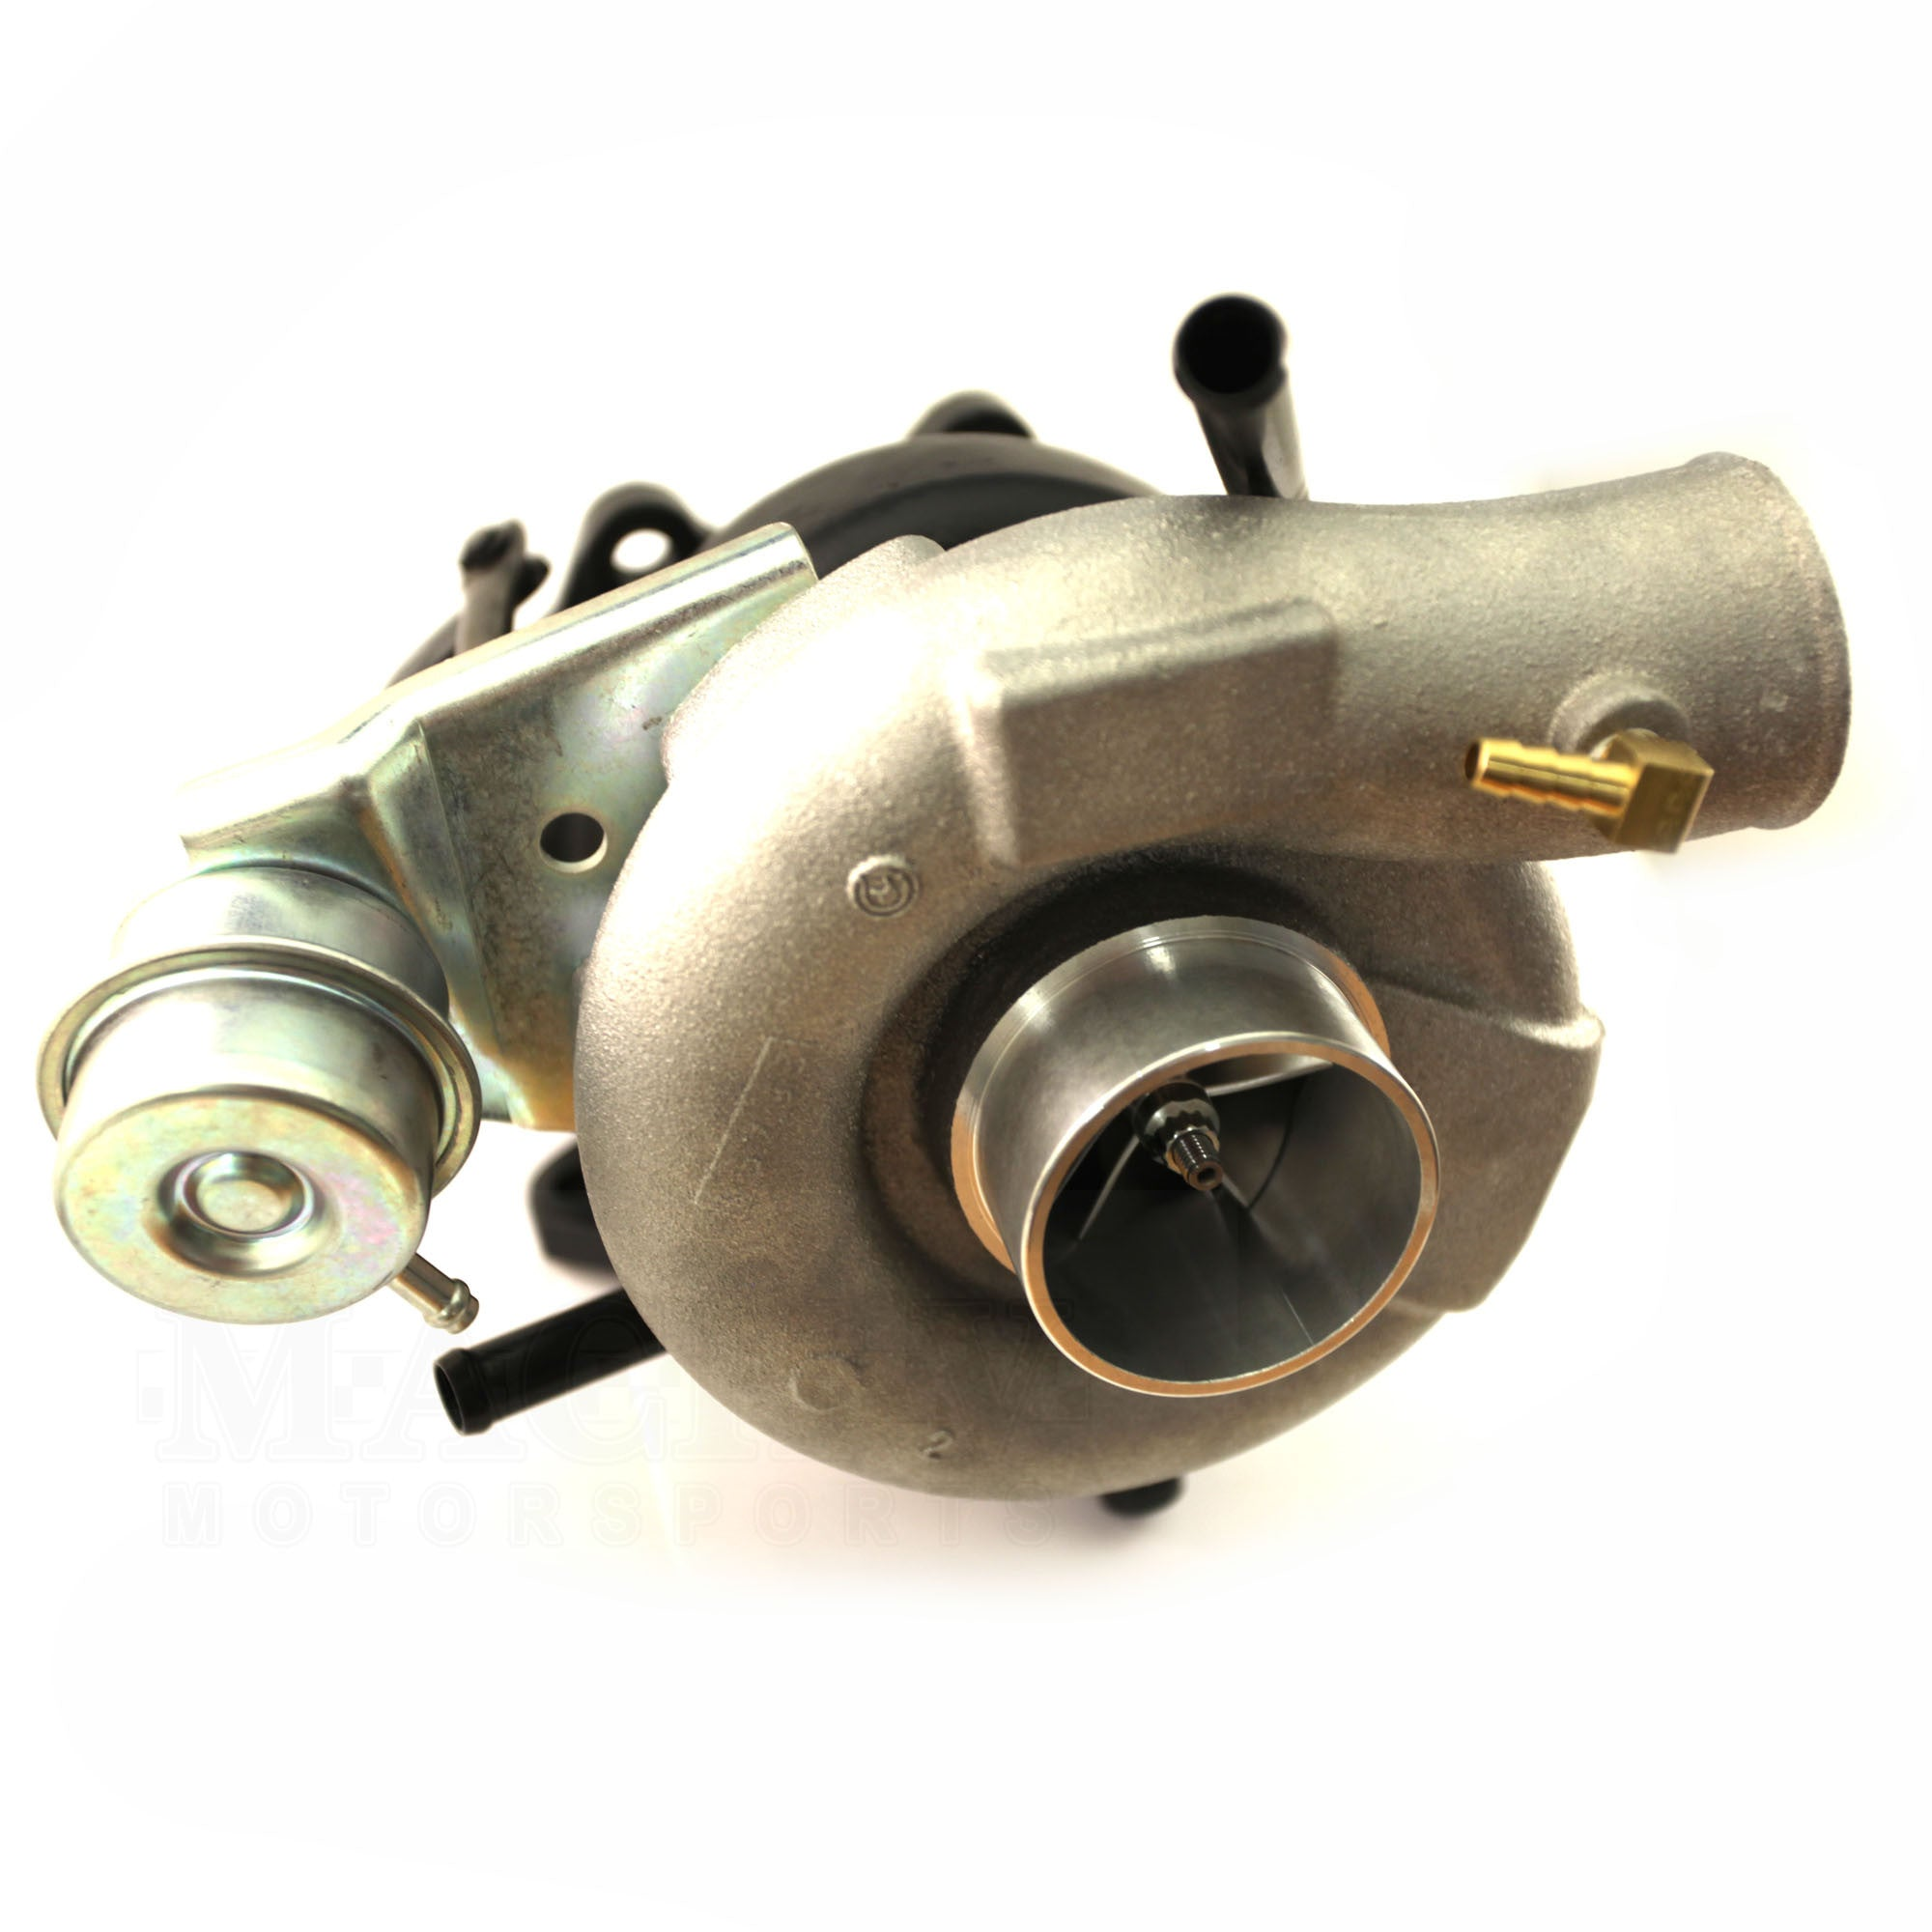 Blouch Dominator 3 0 XT-R Ball Bearing Turbocharger | FastWRX com